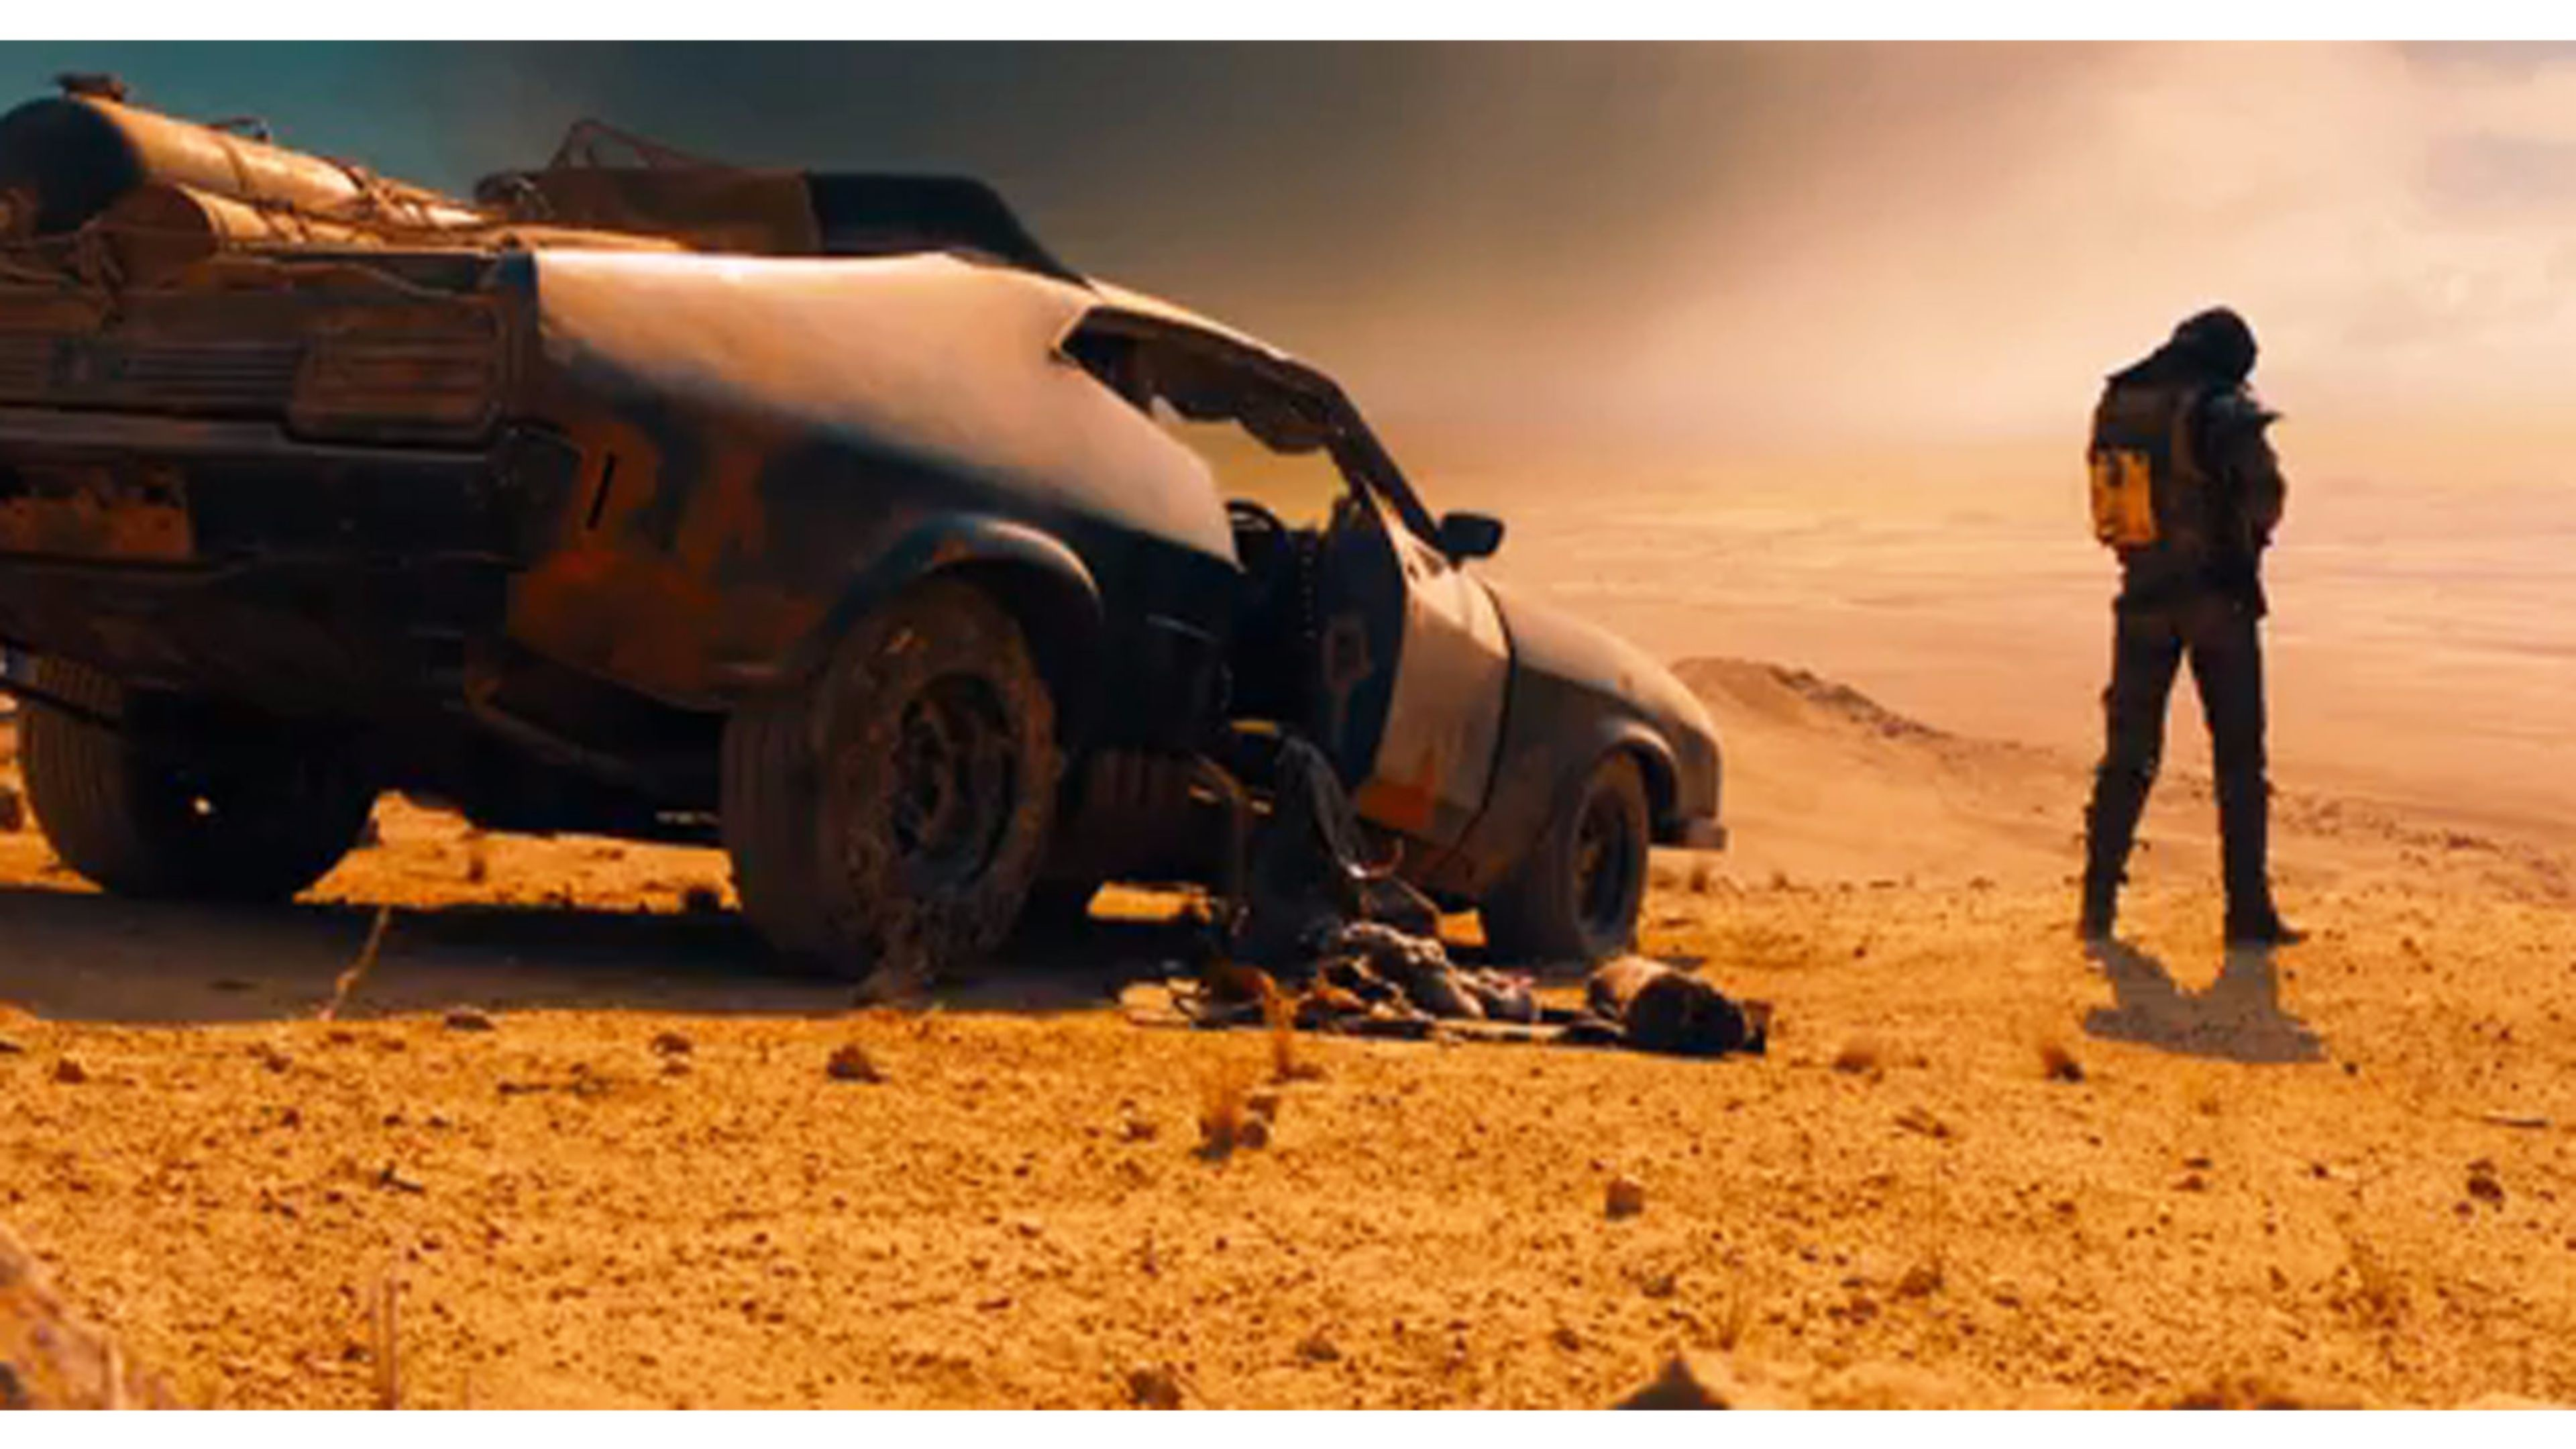 Mad Max Wallpapers (74+ images)